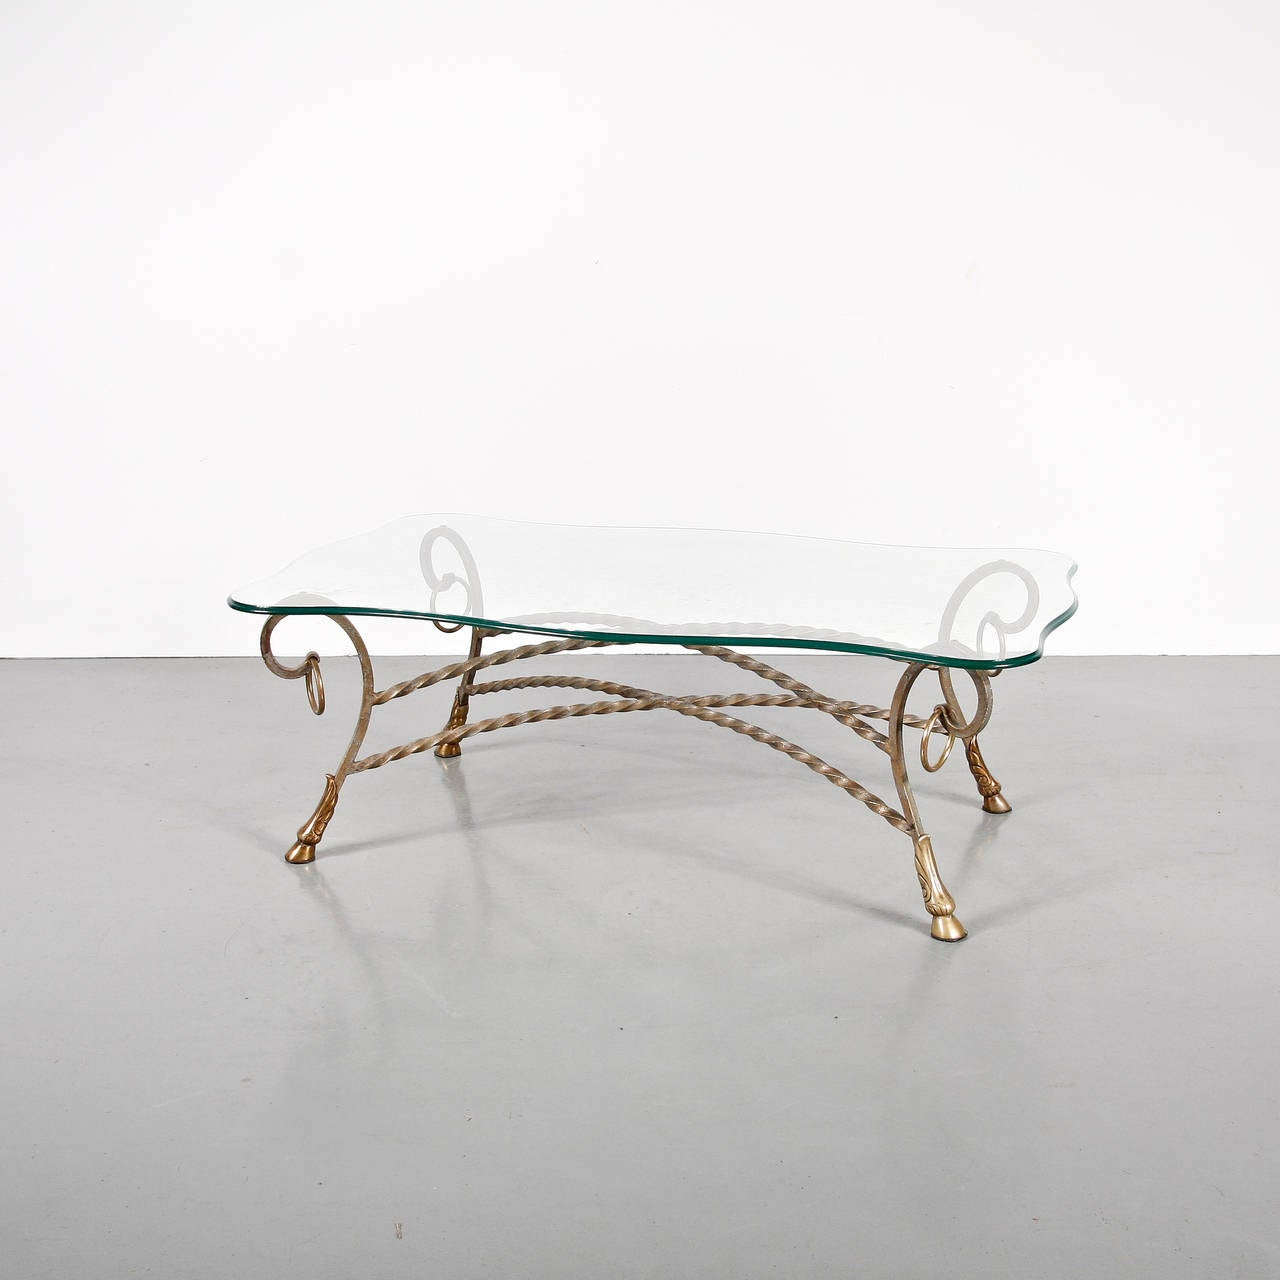 Glass coffee table in the manner of Maison Jansen manufactured in France, circa 1960. High quality glass and brass sculptural structure.  In good original condition, with minor wear consistent with age and use, preserving a beautiful patina.